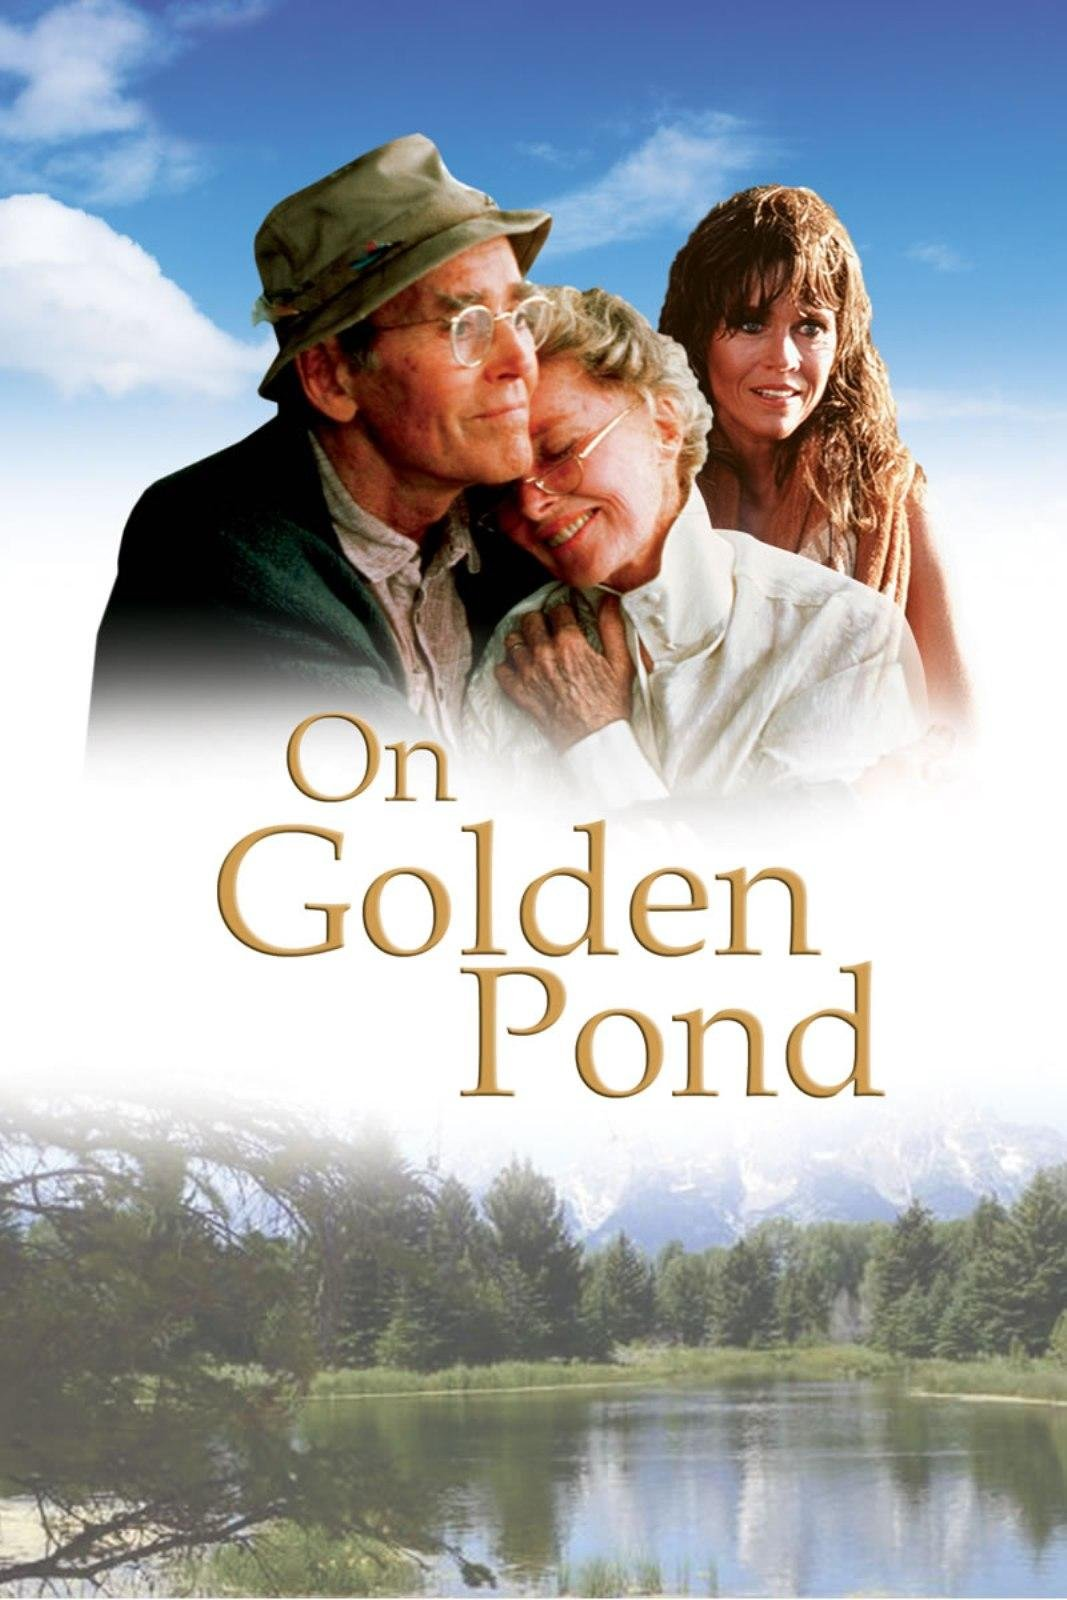 Amazon.com: Watch On Golden Pond | Prime Video